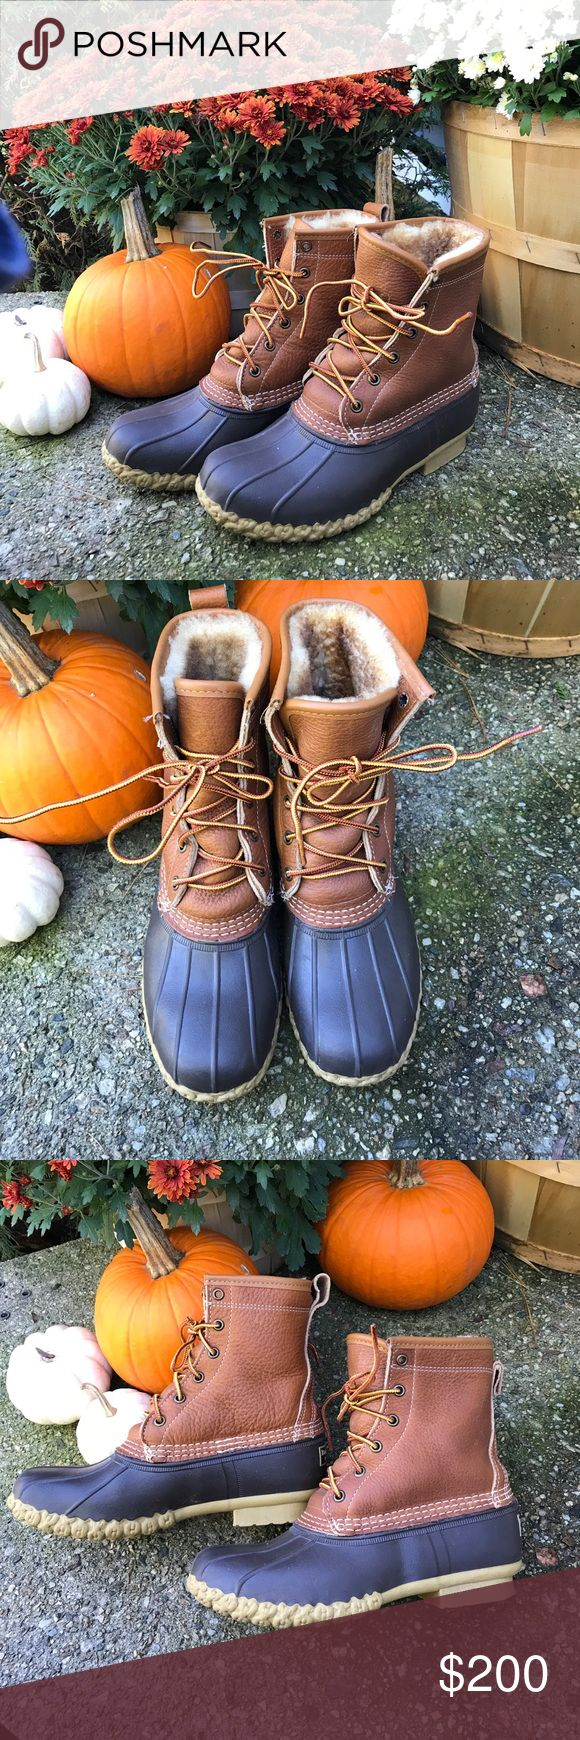 🍁one day sale🍁LL bean shearling lined bean boots LL bean sherling lined bean boots. Worn once and are in excellent condition! Super warm and perfect for fall. Purchased at the LL bean store in Maine. (I loving living one state away from this store!) Comes from a smoke free home. No trades and my price is firm on this listing unless you'd like to make a bundle with other items. Thanks for looking. L.L. Bean Shoes Ankle Boots & Booties